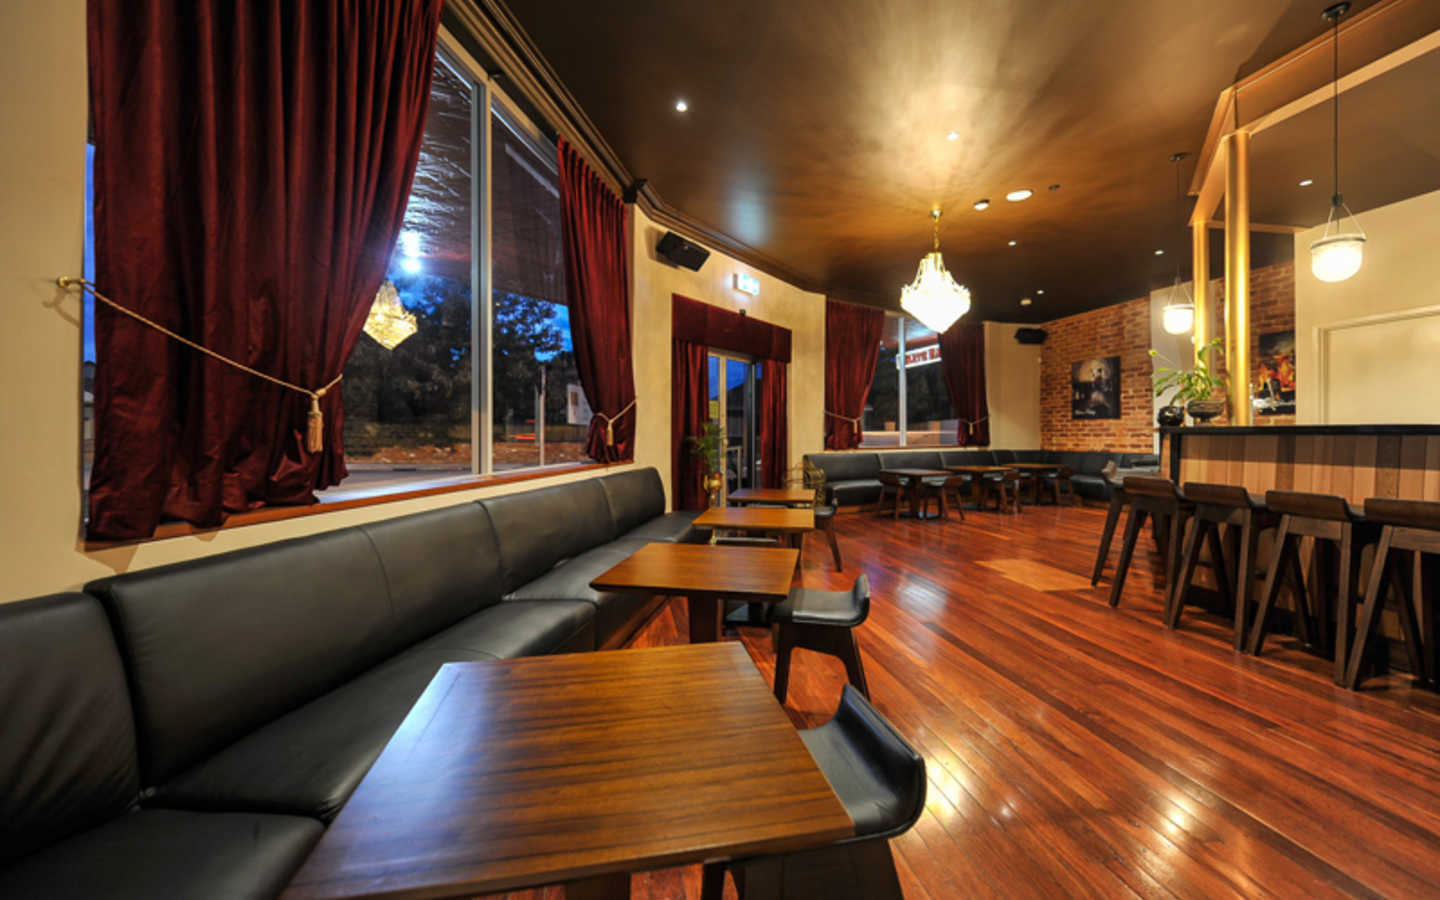 Pirate Bar, Mount Hawthorn